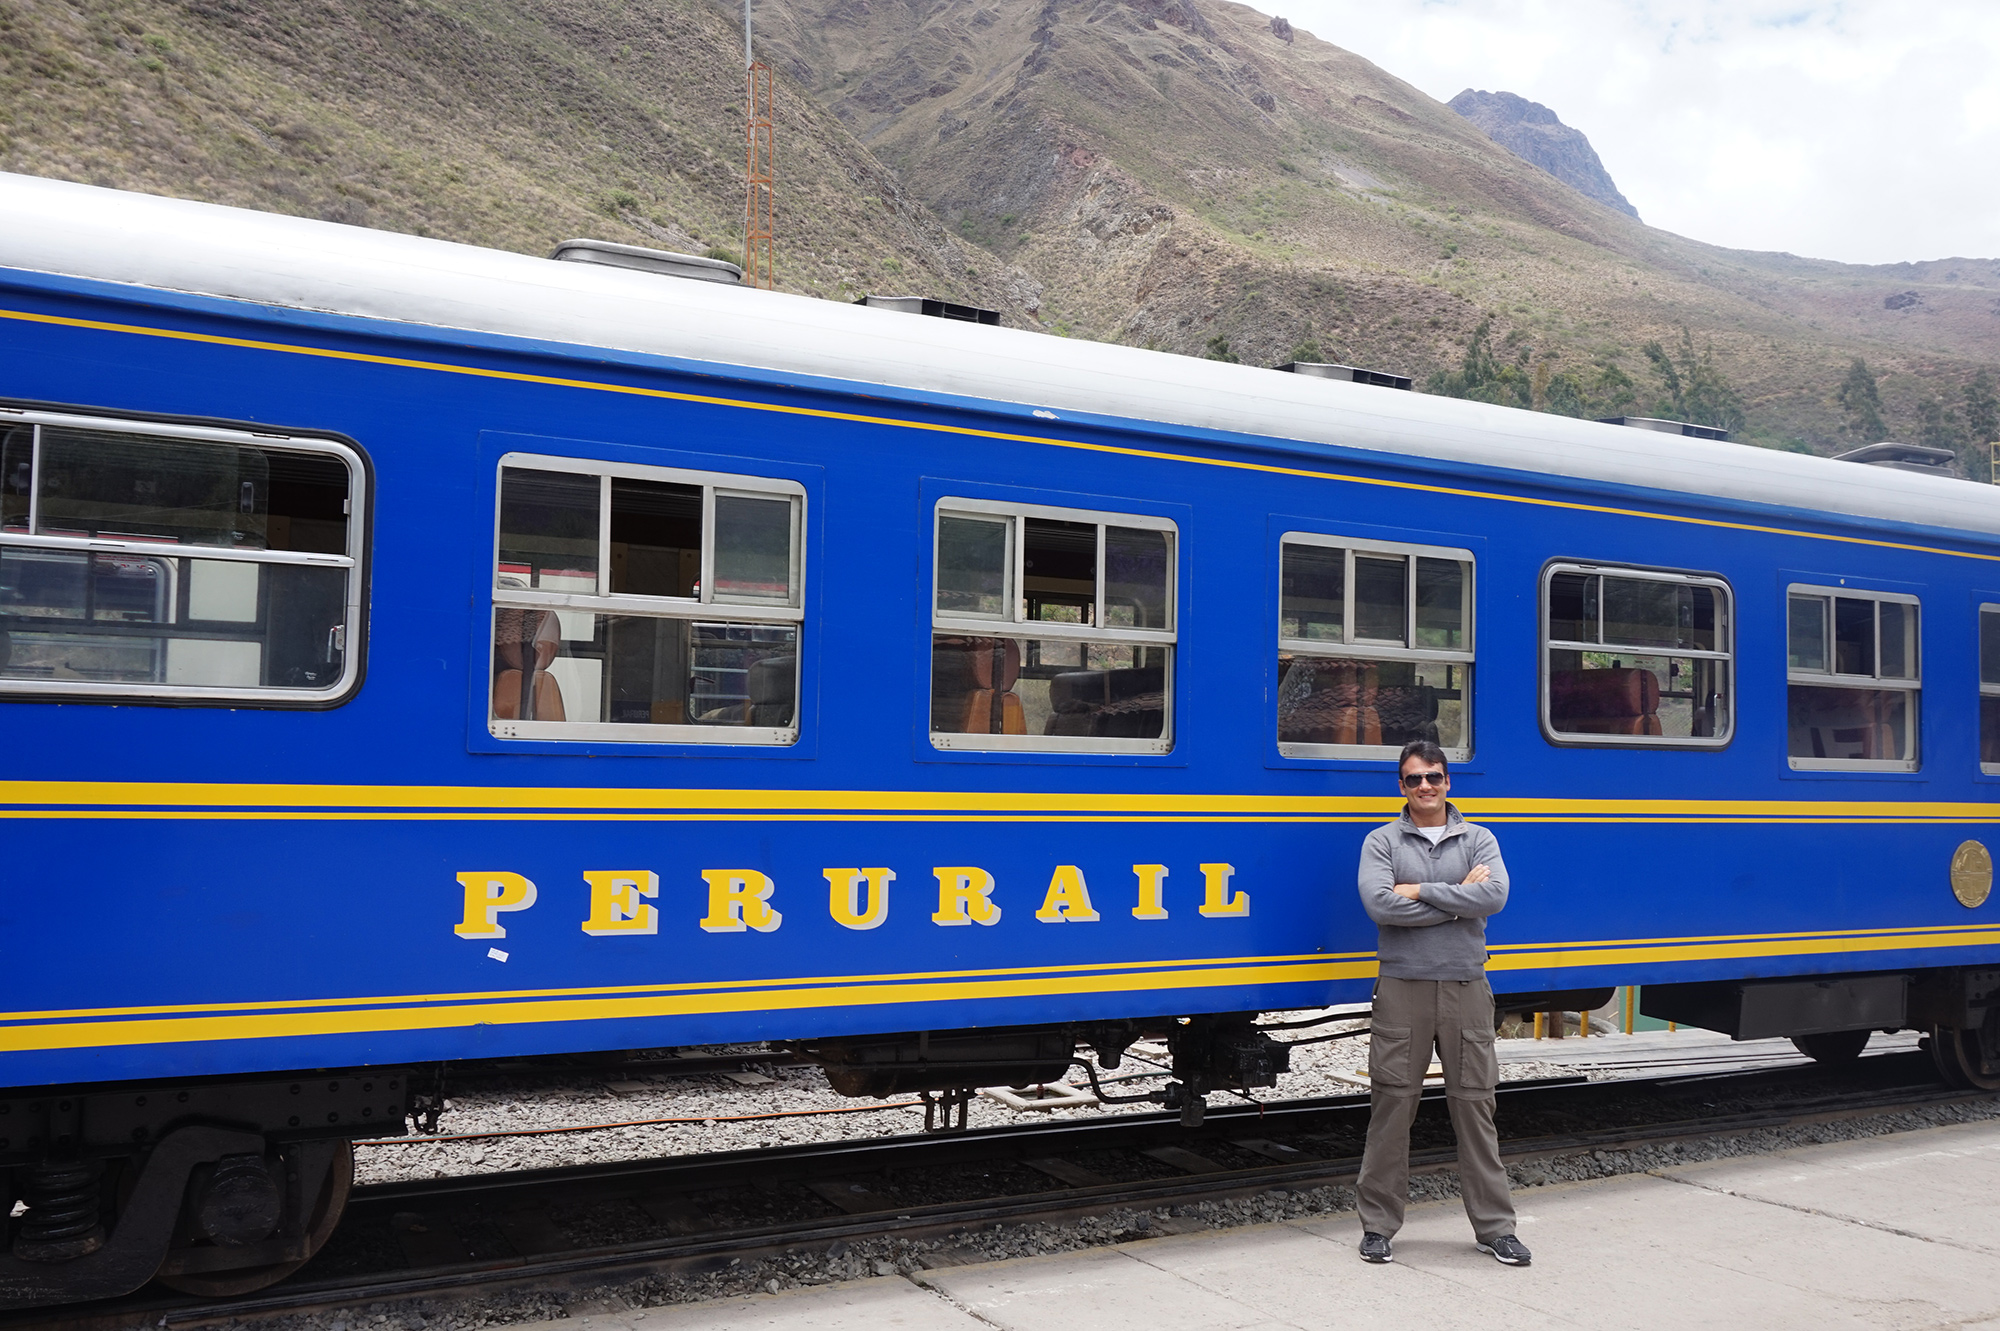 From Cusco To Machu Picchu With Perurail Seatmaestro # Muebles Dany San Joaquin